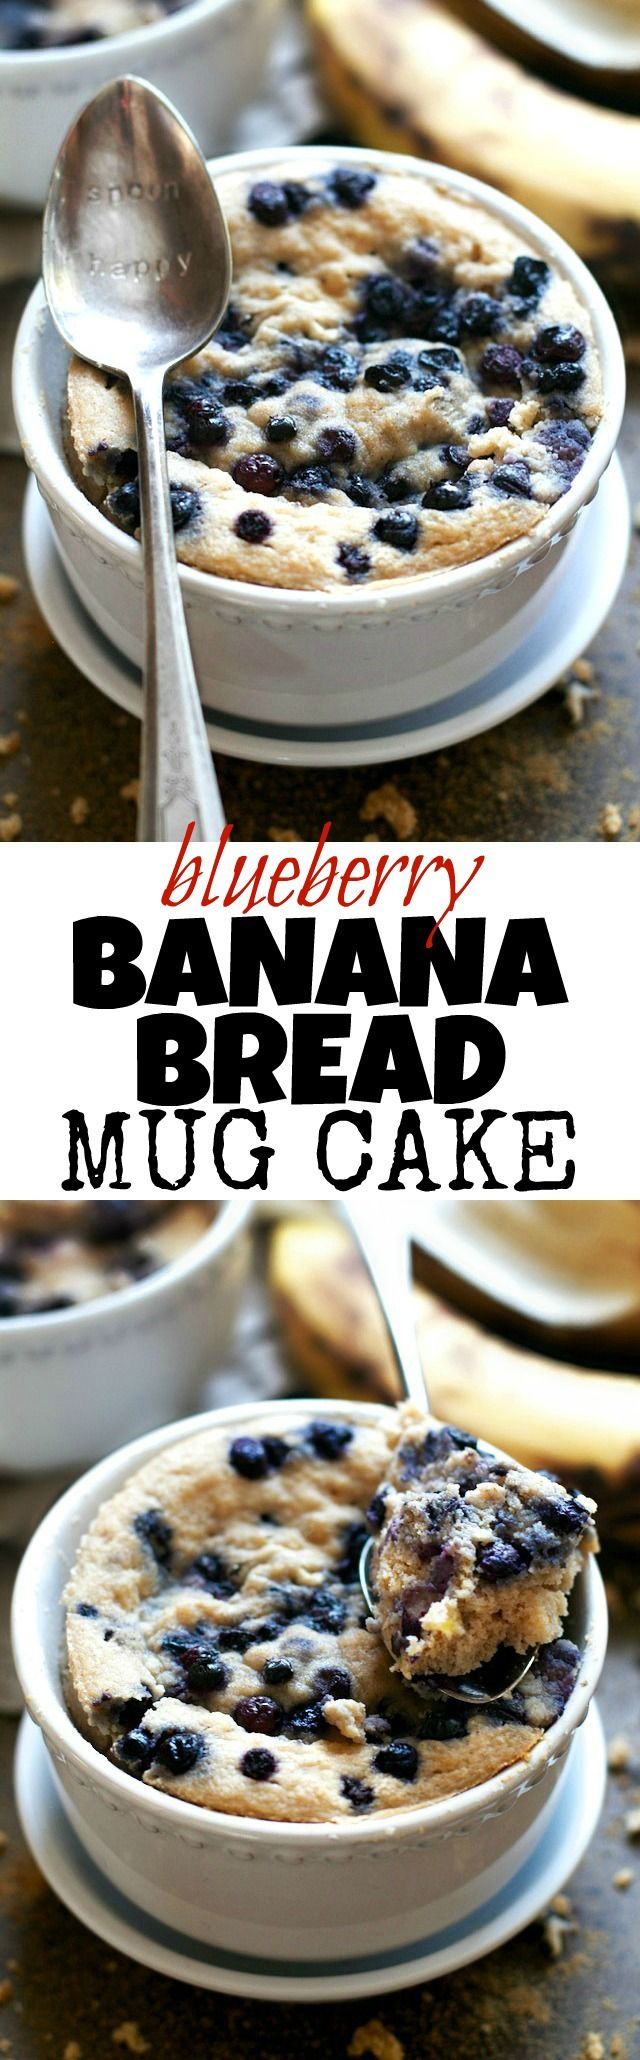 Satisfy your banana bread cravings in less than 5 minutes with this healthy Blueberry Banana Bread Mug Cake! It's made without flour, butter, or oil, but so light and fluffy that you'd never be able to tell! runningwithspoons.com #glutenfree #grainfree